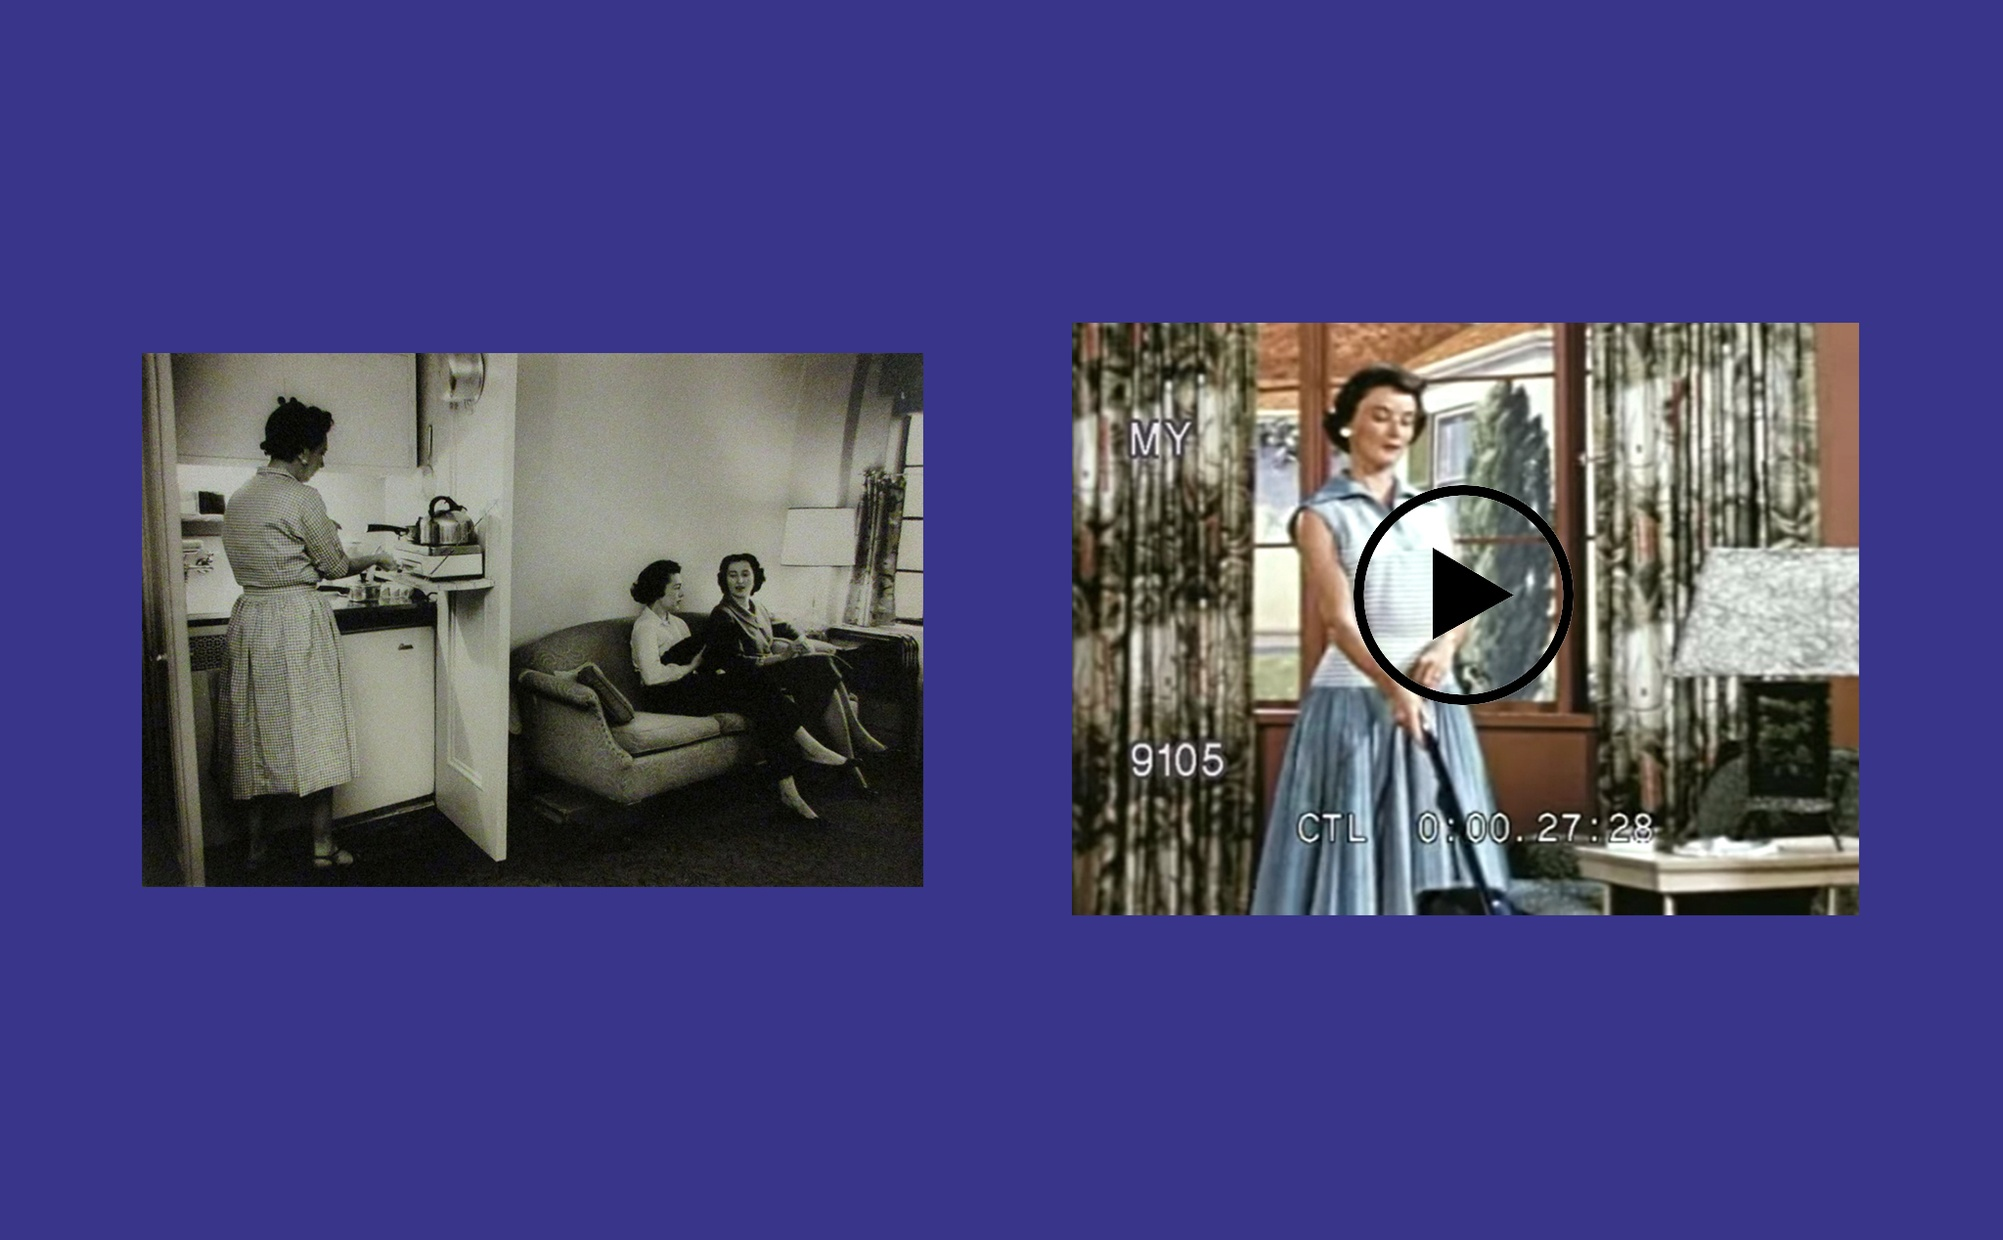 Two images side by side, one image is a black and white photograph of two light-skinned women on a couch with another woman working in the kitchen and the other image is a film still of light-skinned woman vacuuming.